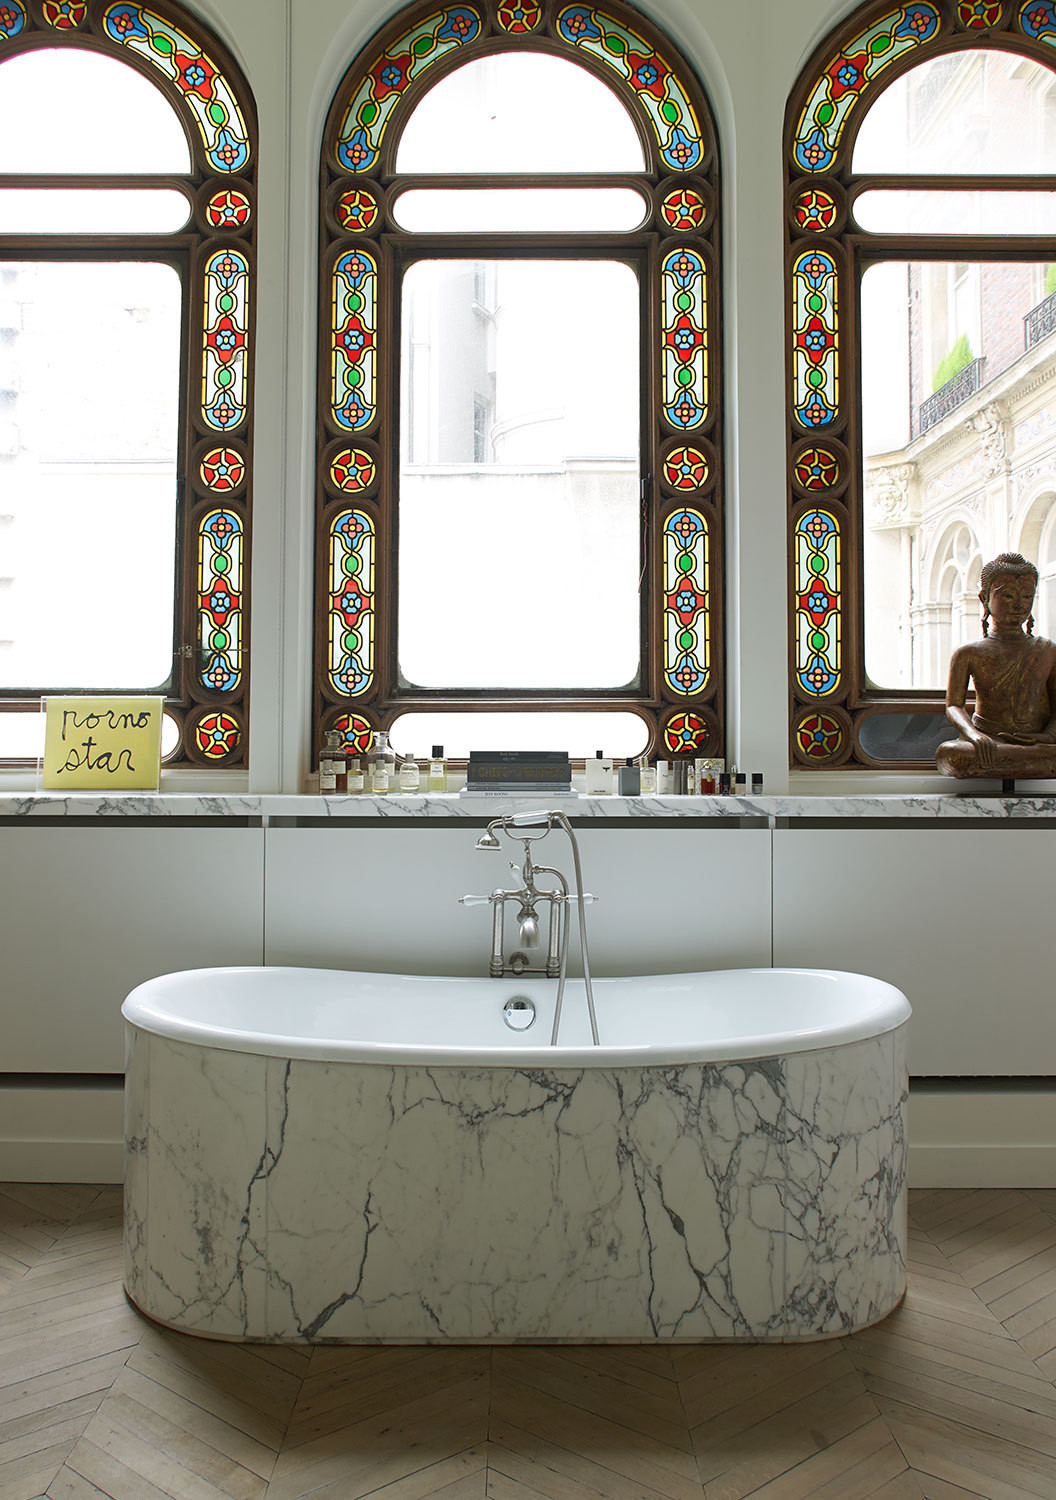 Original stained-glass windows above a soaking tub clad in Calacatta marble.